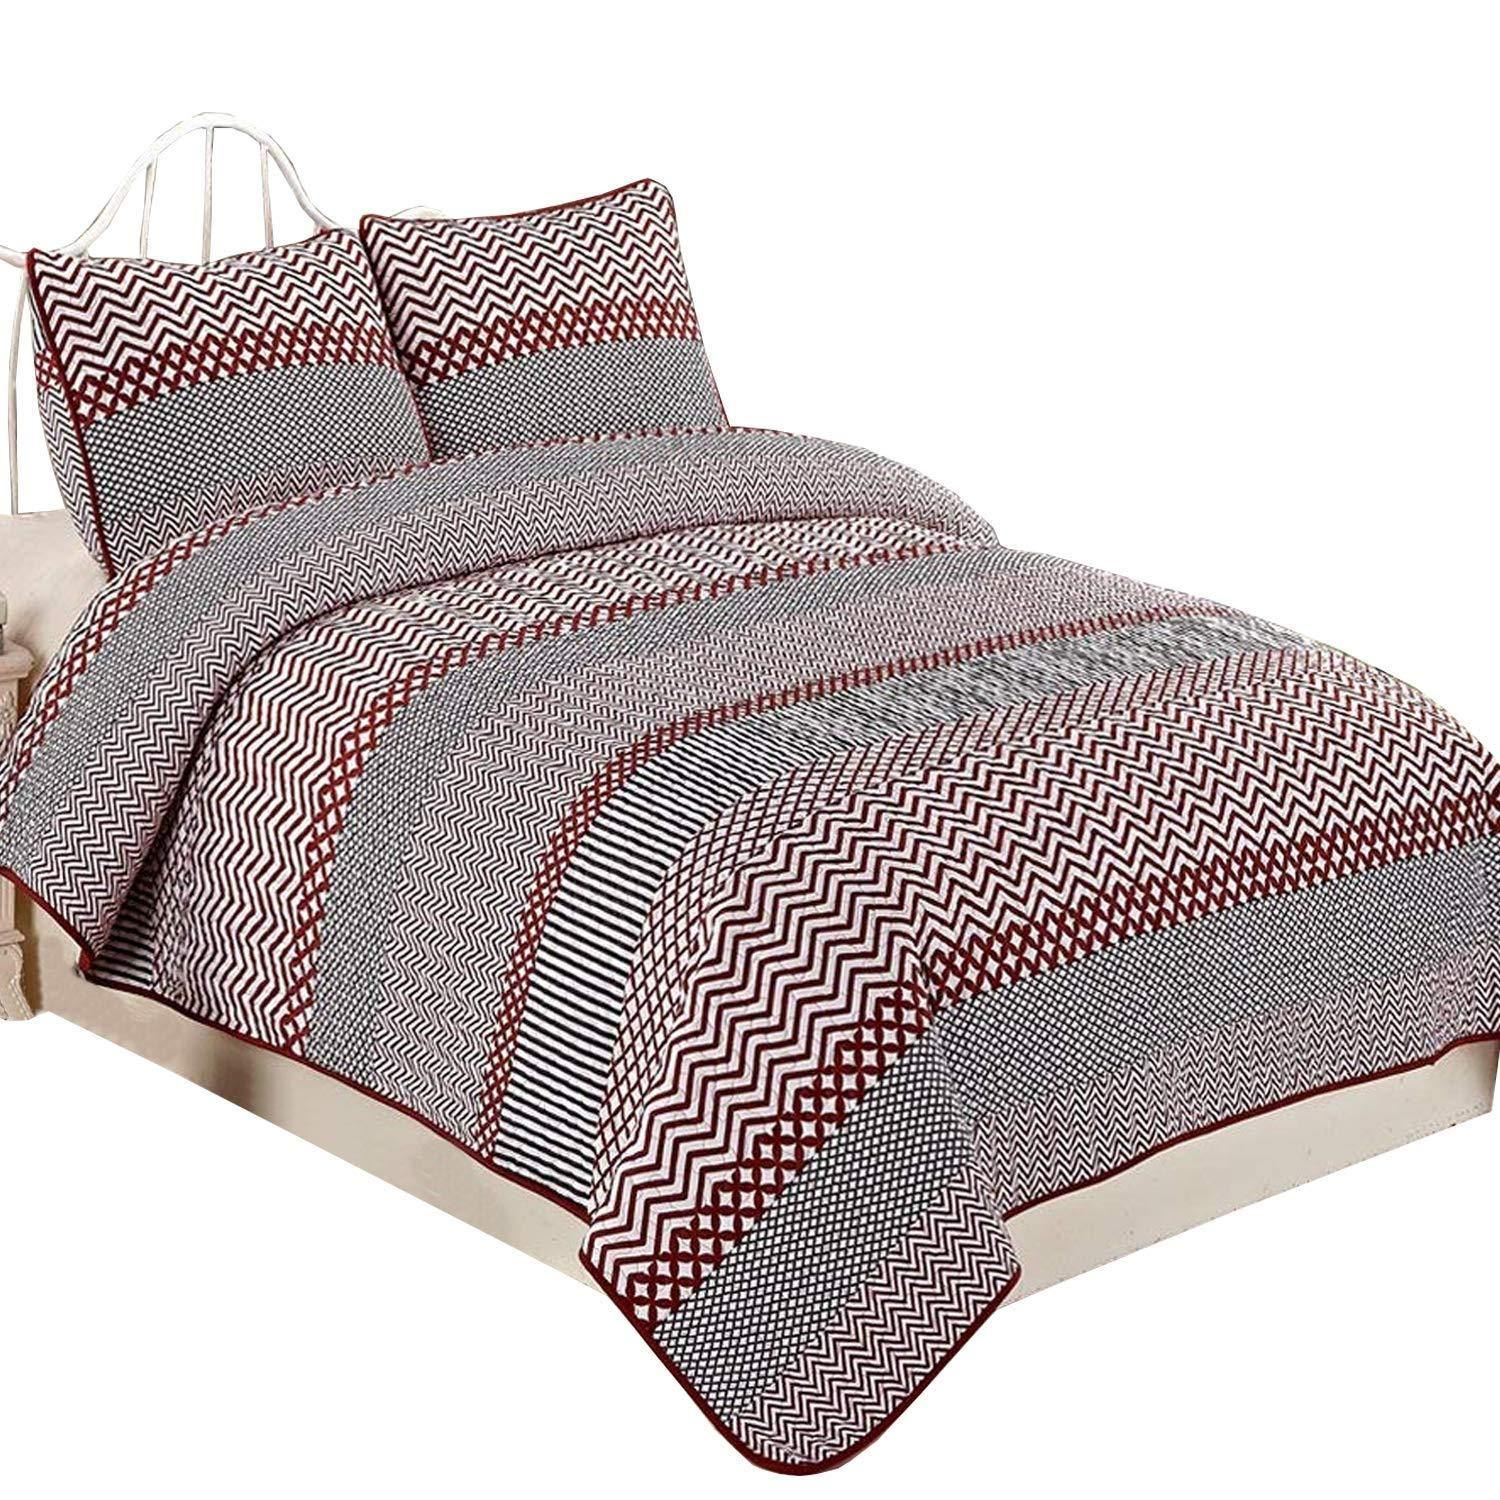 NTBAY 3 Pieces Red Striped Printed Microfiber King Size 86x104 inches Quilt Set (King,Red Striped) - NTBAY